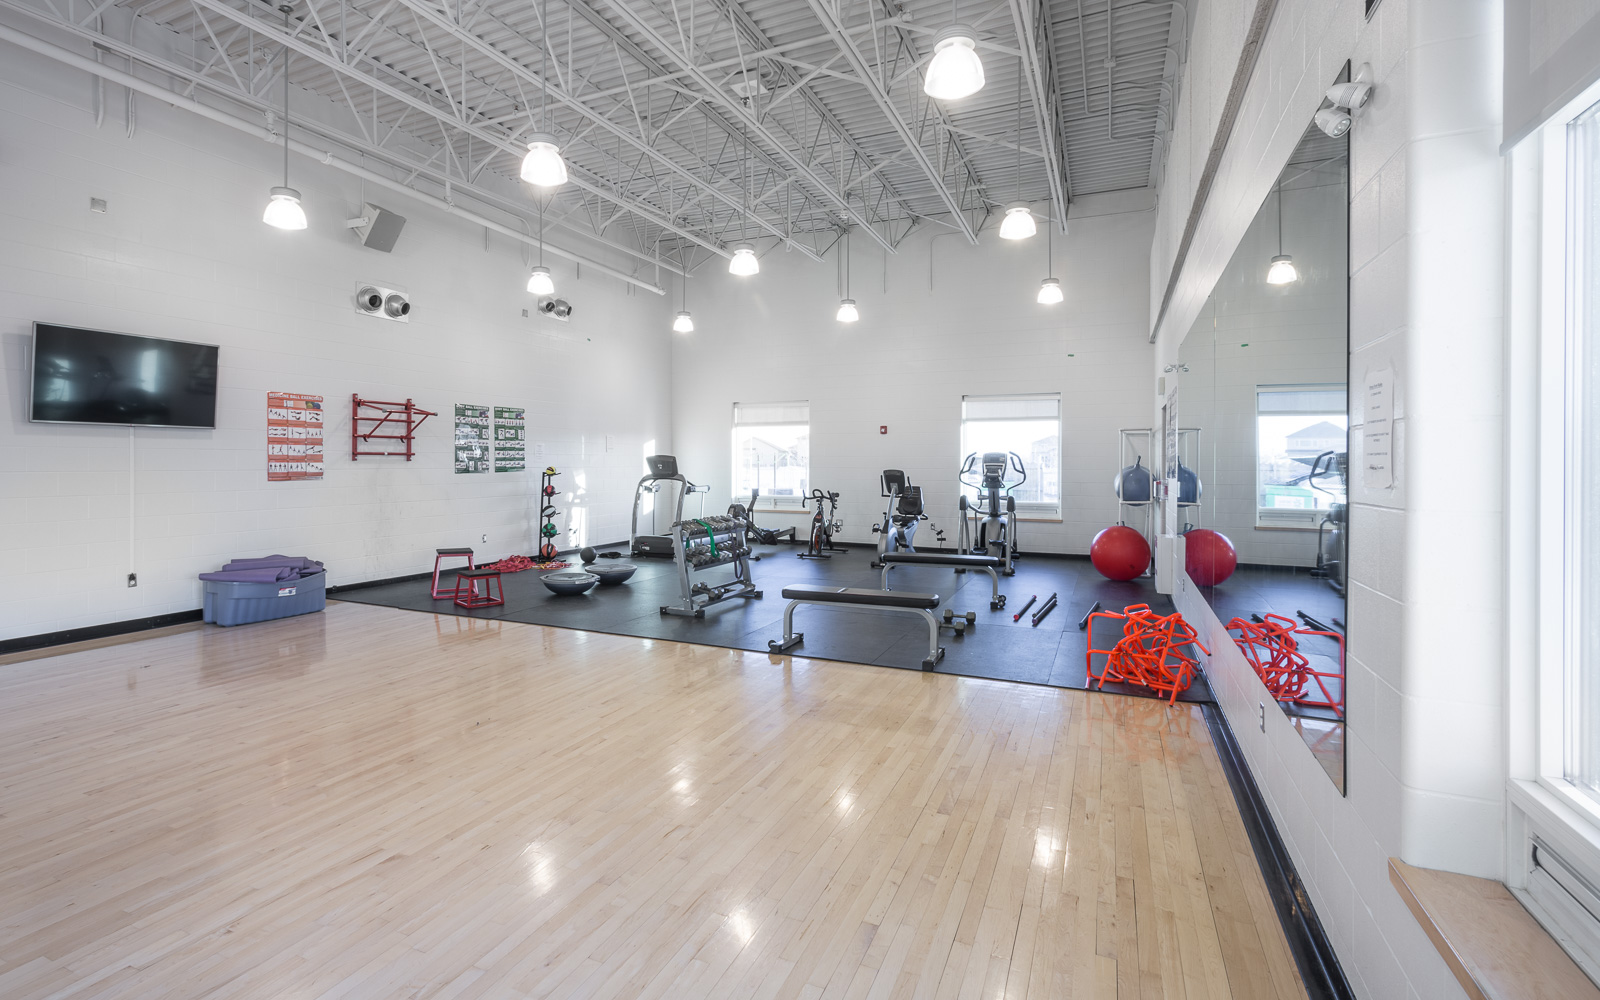 Amber Trails Community School, interior photo of gym workout room / Photo:  Lindsay Reid